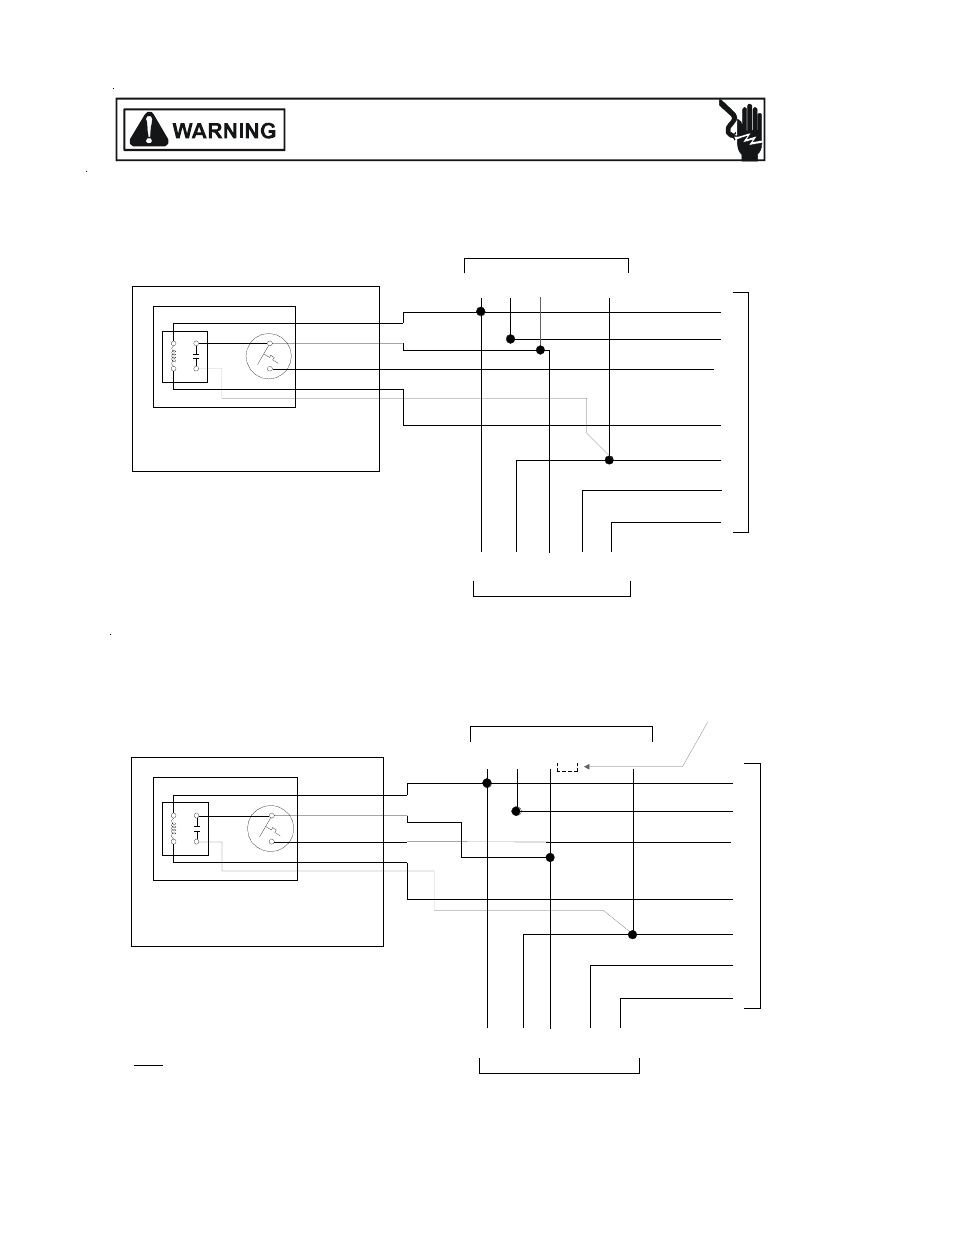 15kw Air Handler Wiring Diagram Online Schematics Electric Heater Relay Accessories Diagrams And Above Two Stage Heat Access